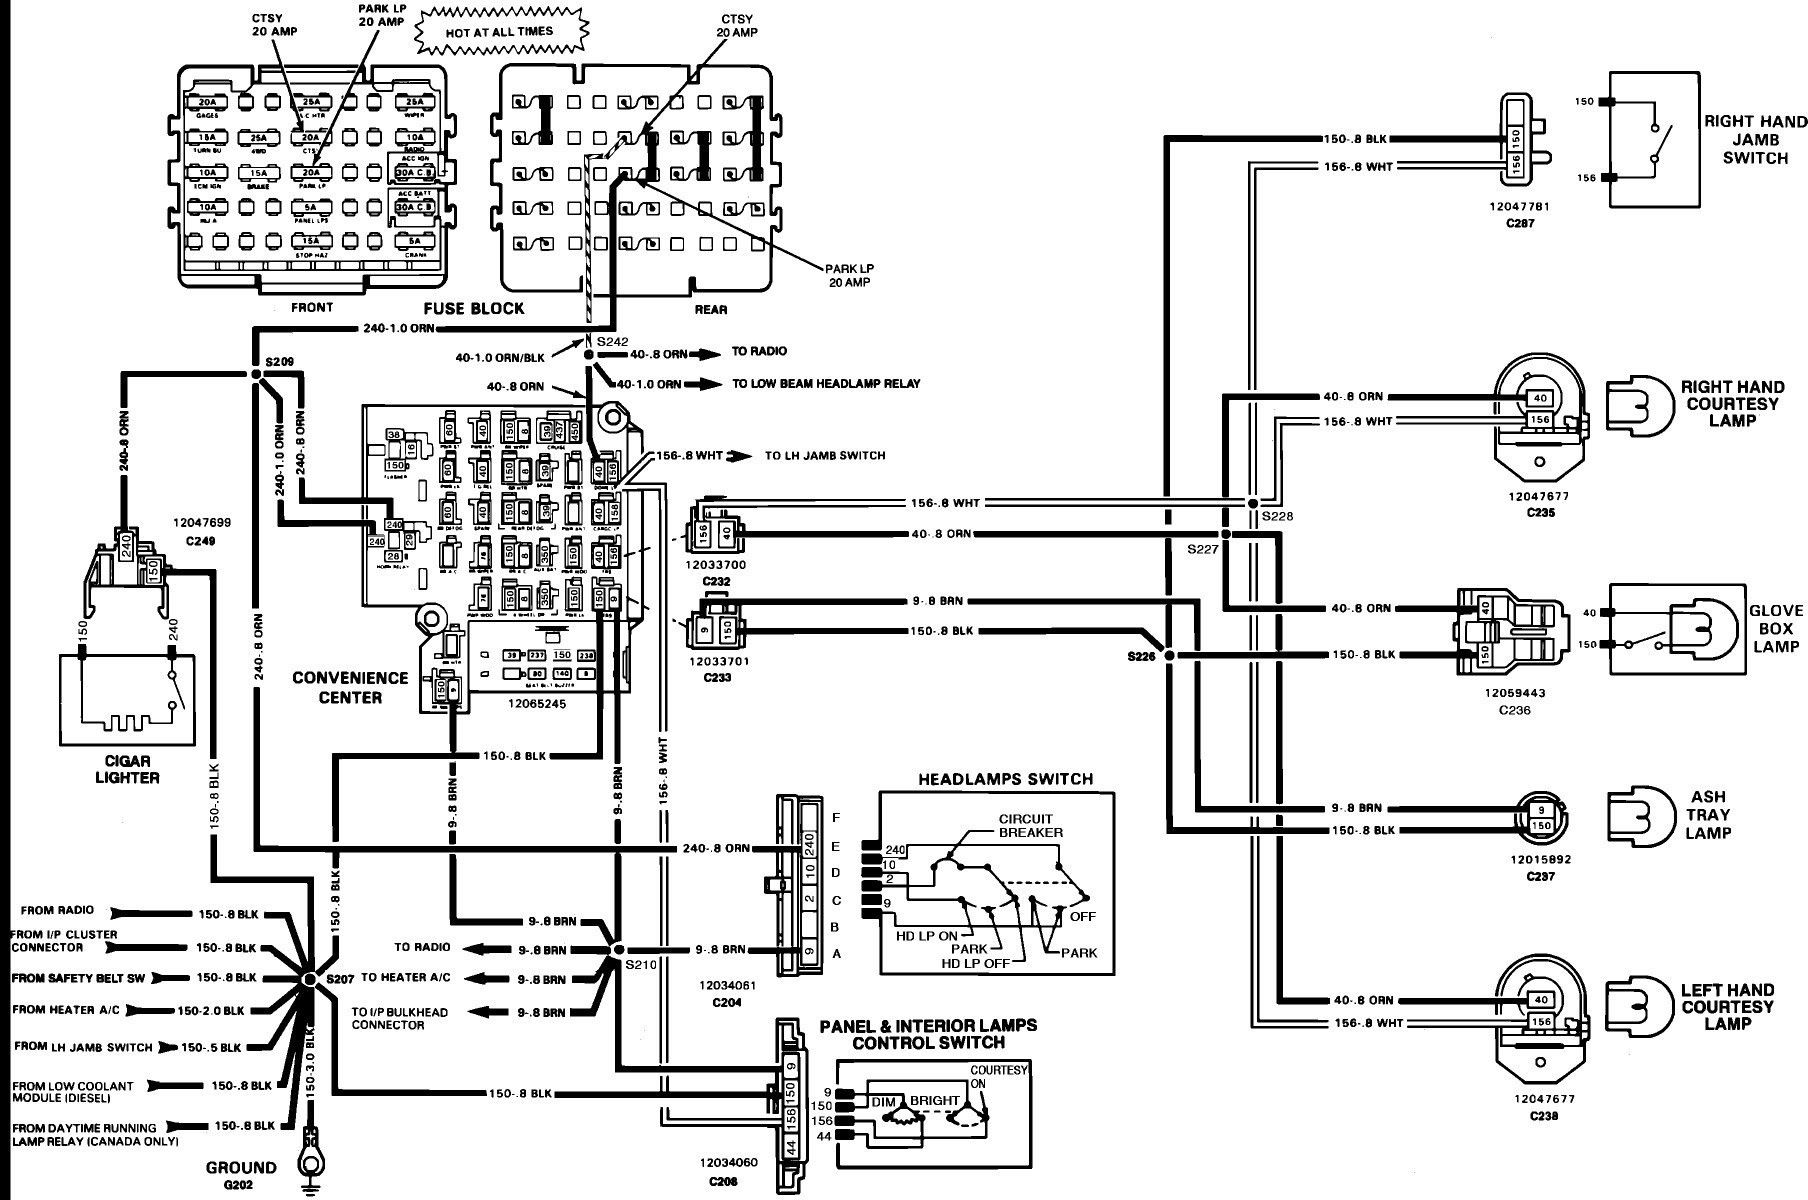 Unique Home Wiring Diagram Sample Diagram Diagramsample